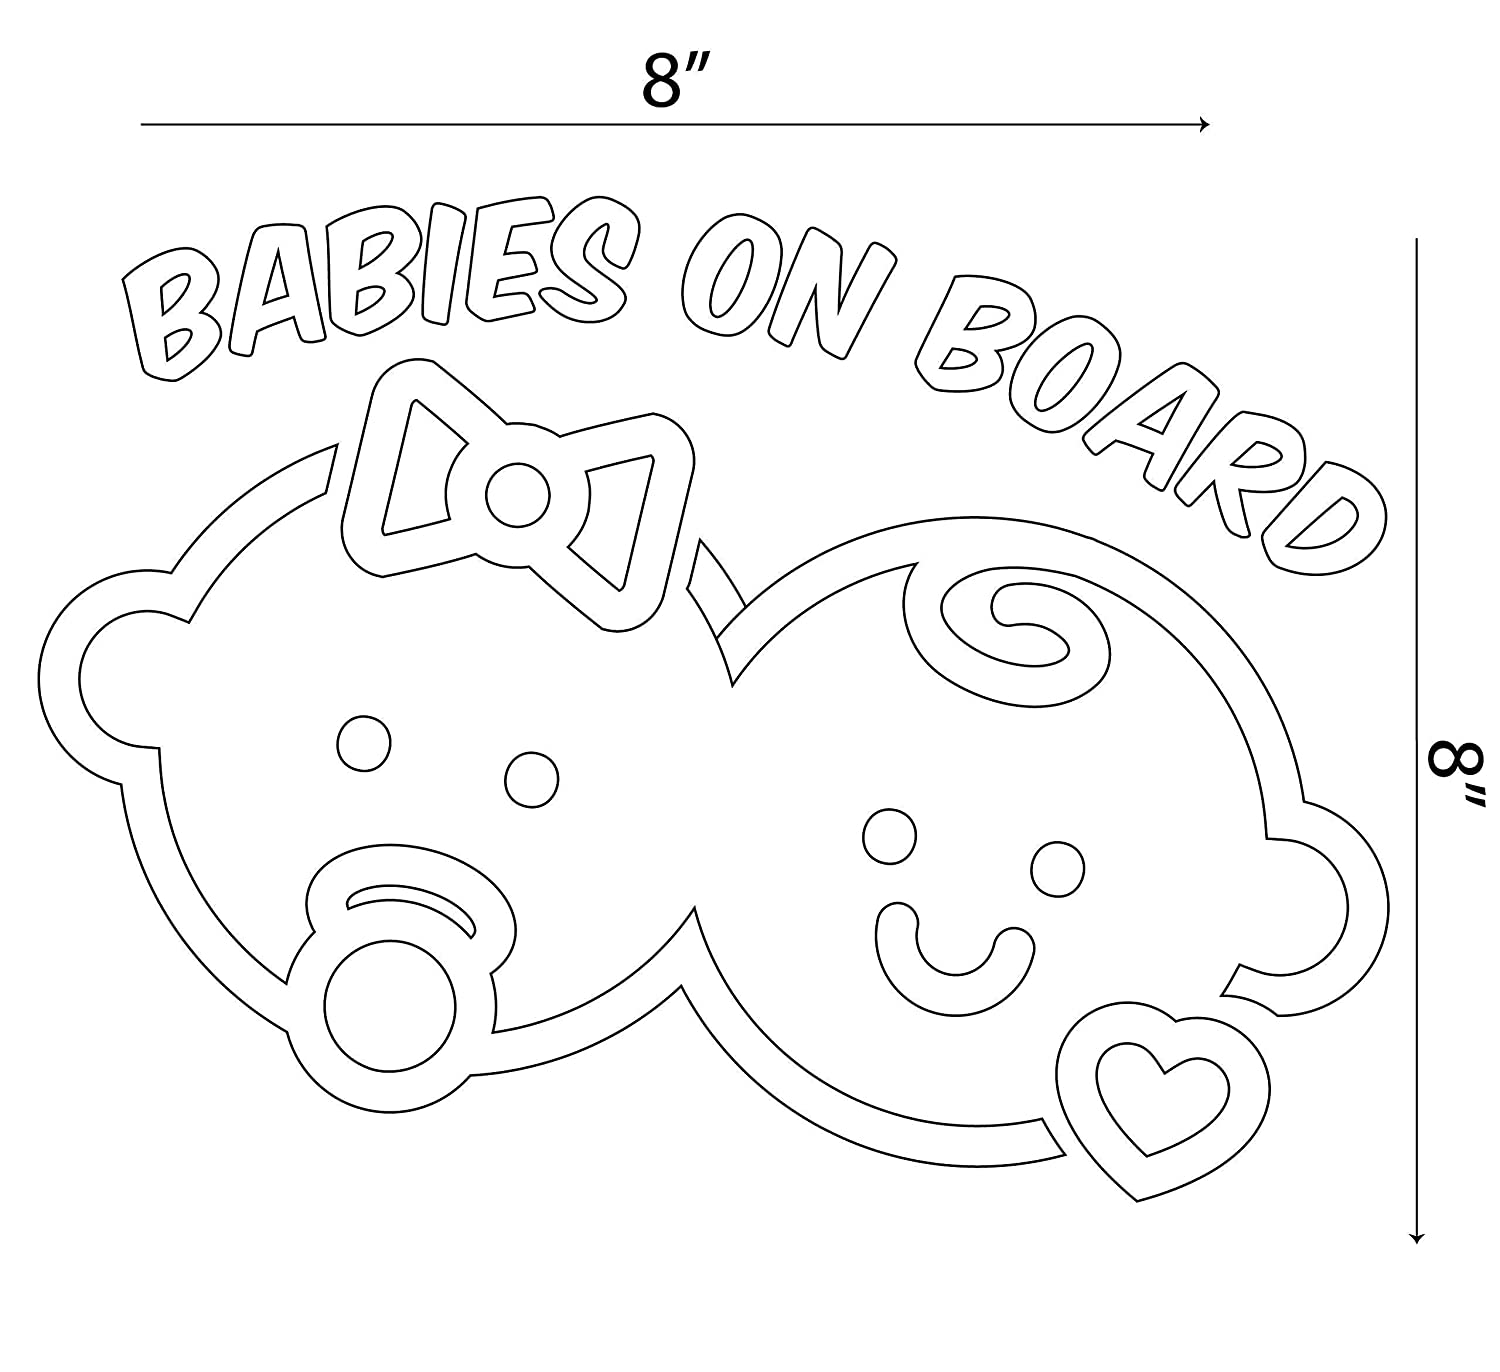 B07BZ546D9 Babies on Board Stickers For Cars Window Decal Truck Gift 71bsSrjh8jL